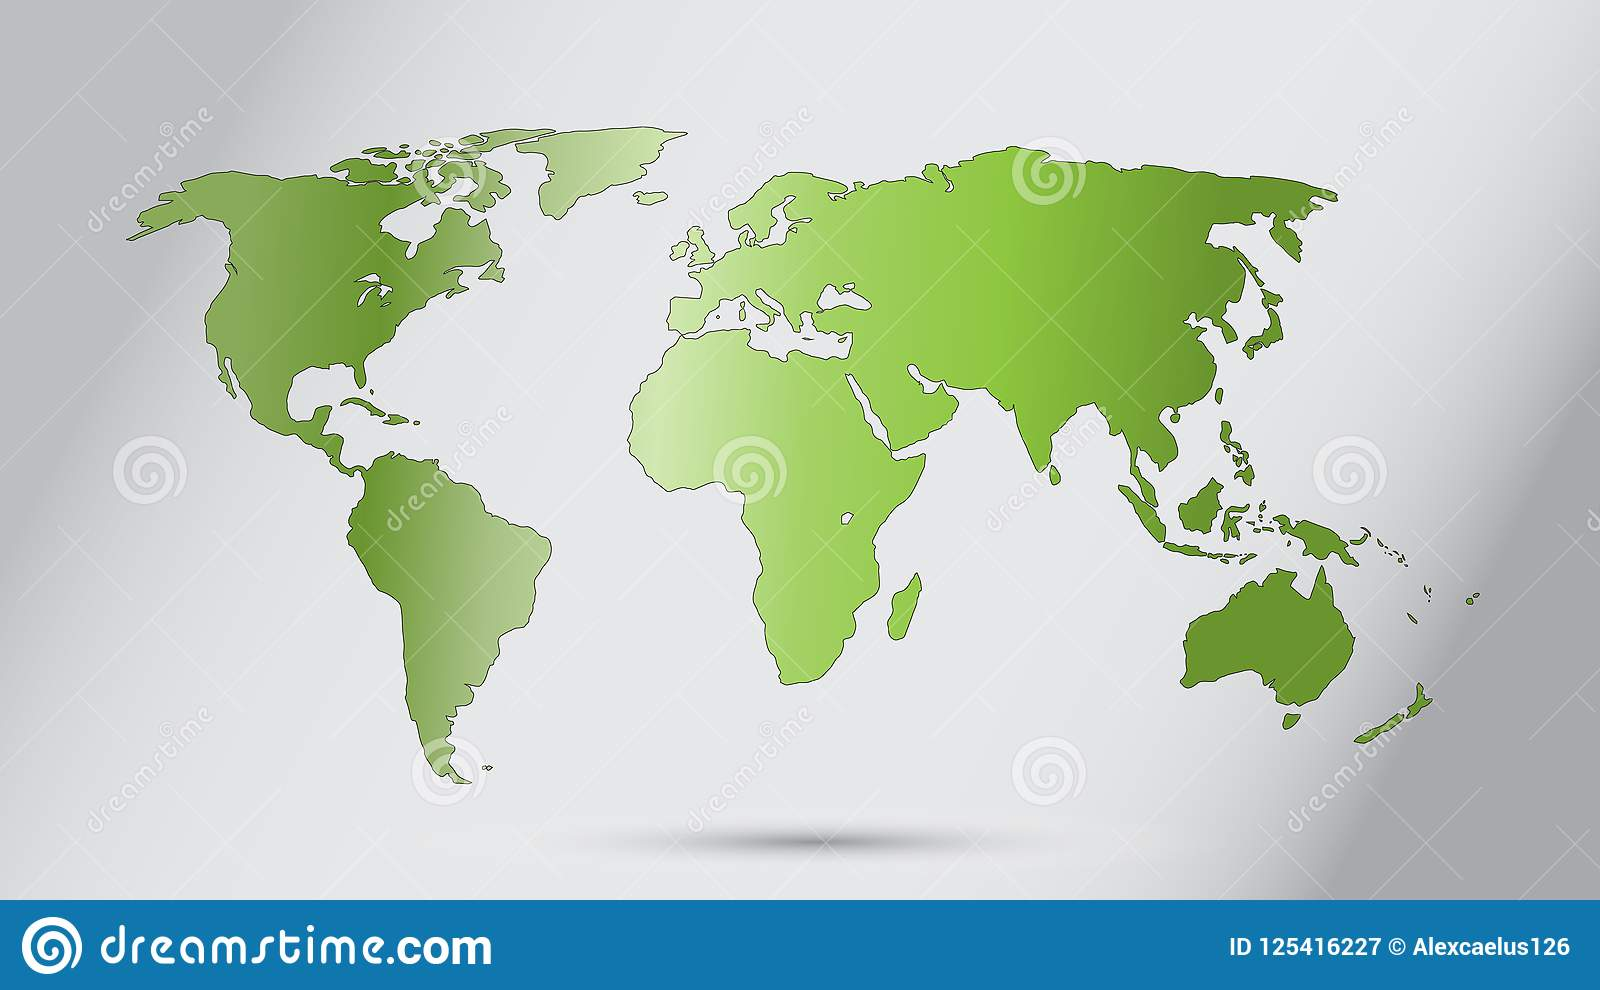 World map vector ecology concept green world flat earth map for world map vector ecology concept green world flat earth map for website annual report infographics world map illustration vector illustration gumiabroncs Image collections